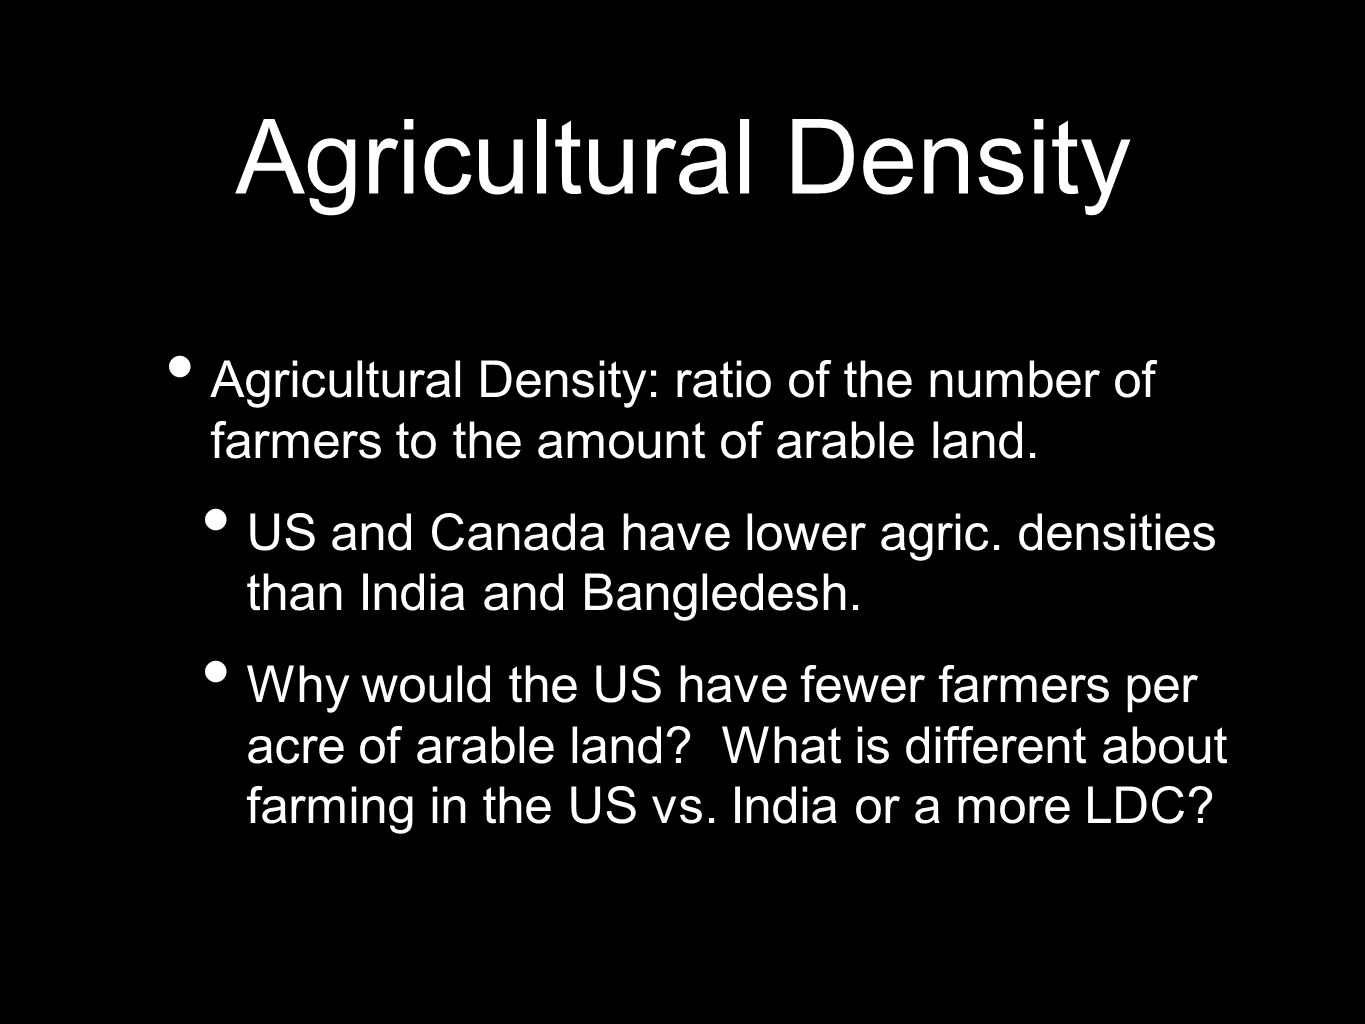 Agricultural DensityAgricultural Density: ratio of the number of farmers to the amount of arable land.